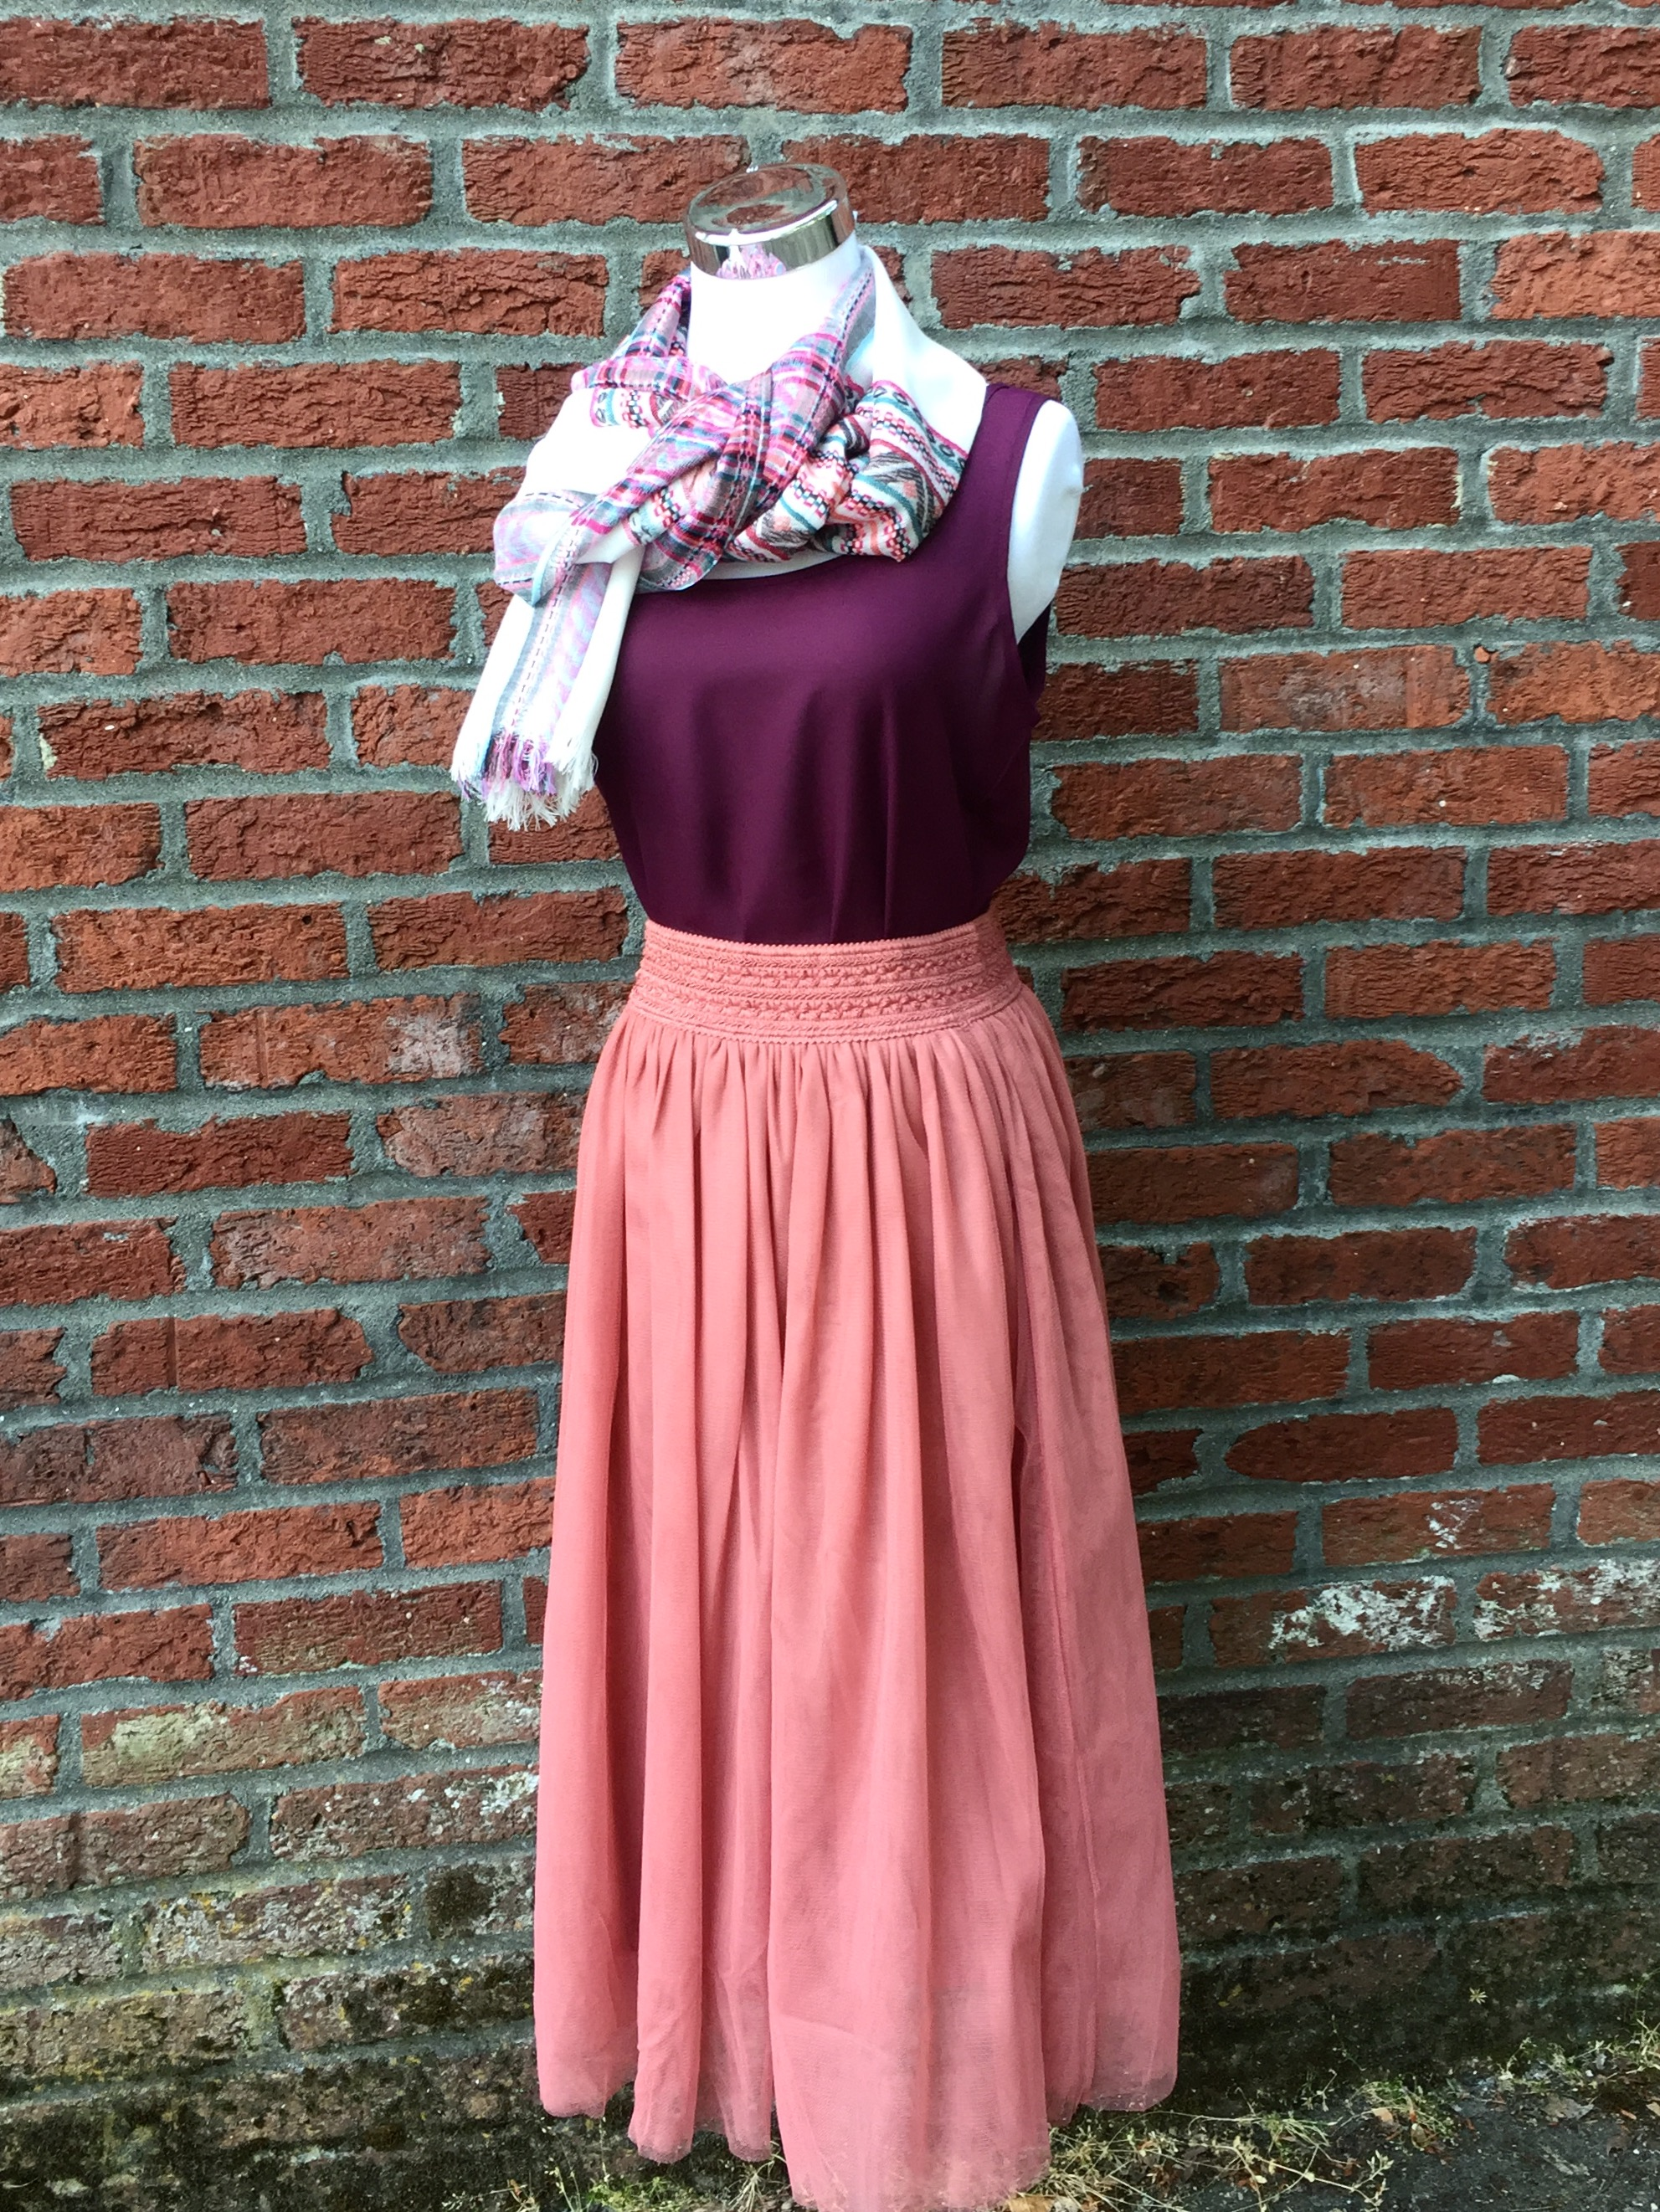 Wine Tank (Also in orange, $21) Pink Midi Skirt ($35)